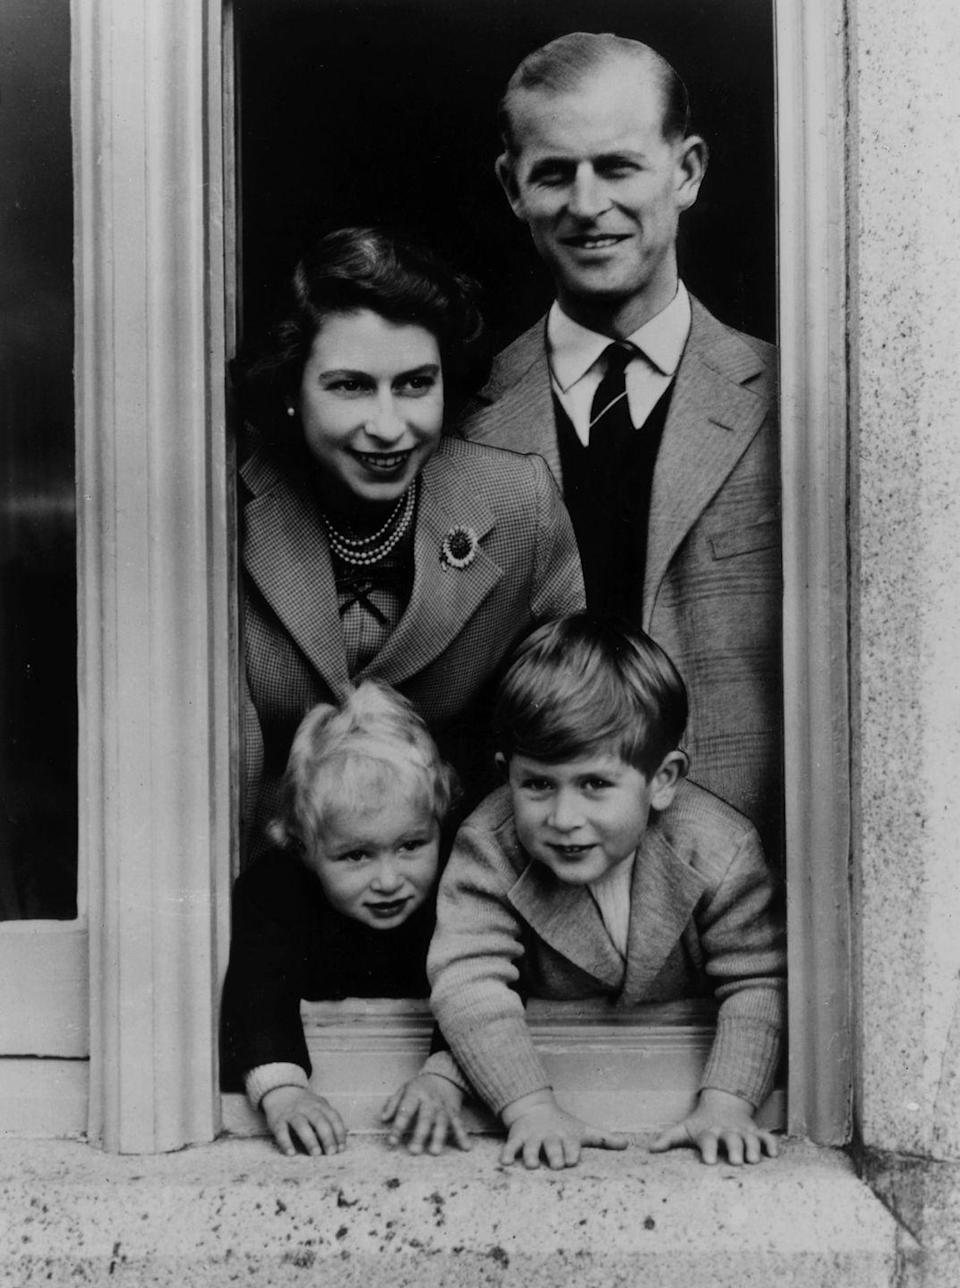 <p>In September 1952, Prince Philip and Queen Elizabeth posed with their young children, Charles and Anne, at Balmoral Castle in Scotland.</p>